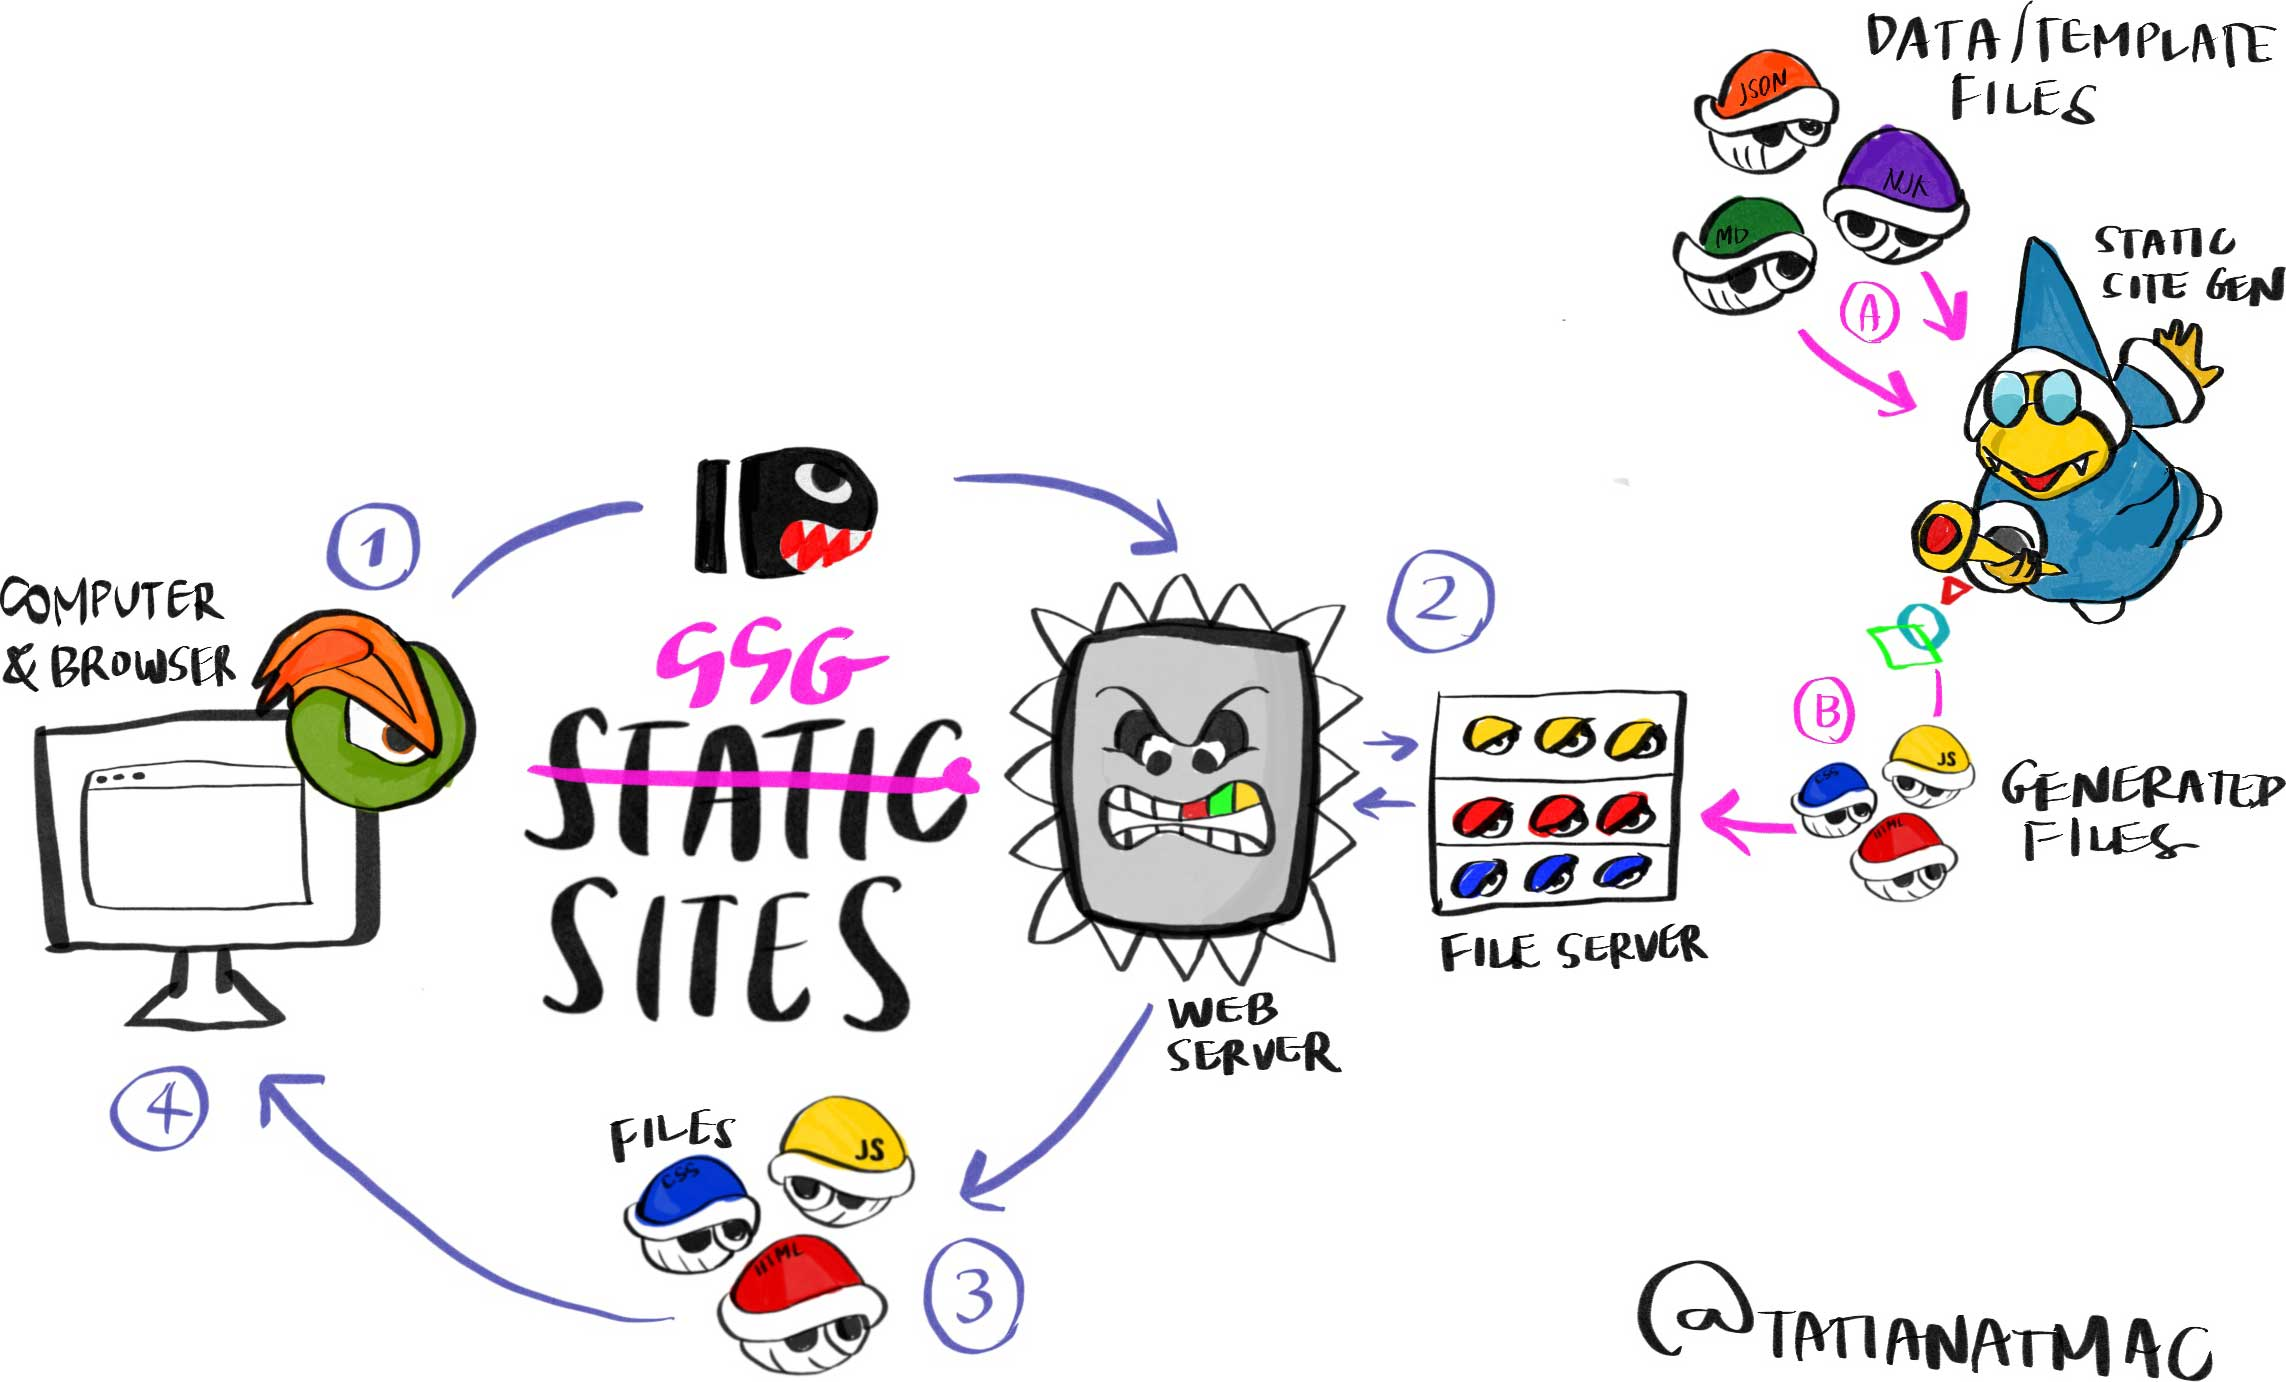 Diagram of SSG sites where all elements are from Super Mario to illustrate how static sites are generated. Computer and browser (browser logo is Bowser's eye and eyebrow done in Firefox/Edge style) sends a request (Bullet Bill) to the web server (Thomp). Simultaneously, data/template files (Koopas as Markdown, JSON, and Nunjucks files) are sent to the static site generator (Magic Koopa) who sends generated static files (Koopas dressed as HTML, CSS, and JS files) back to the web server. The web server sends those files to the computer.